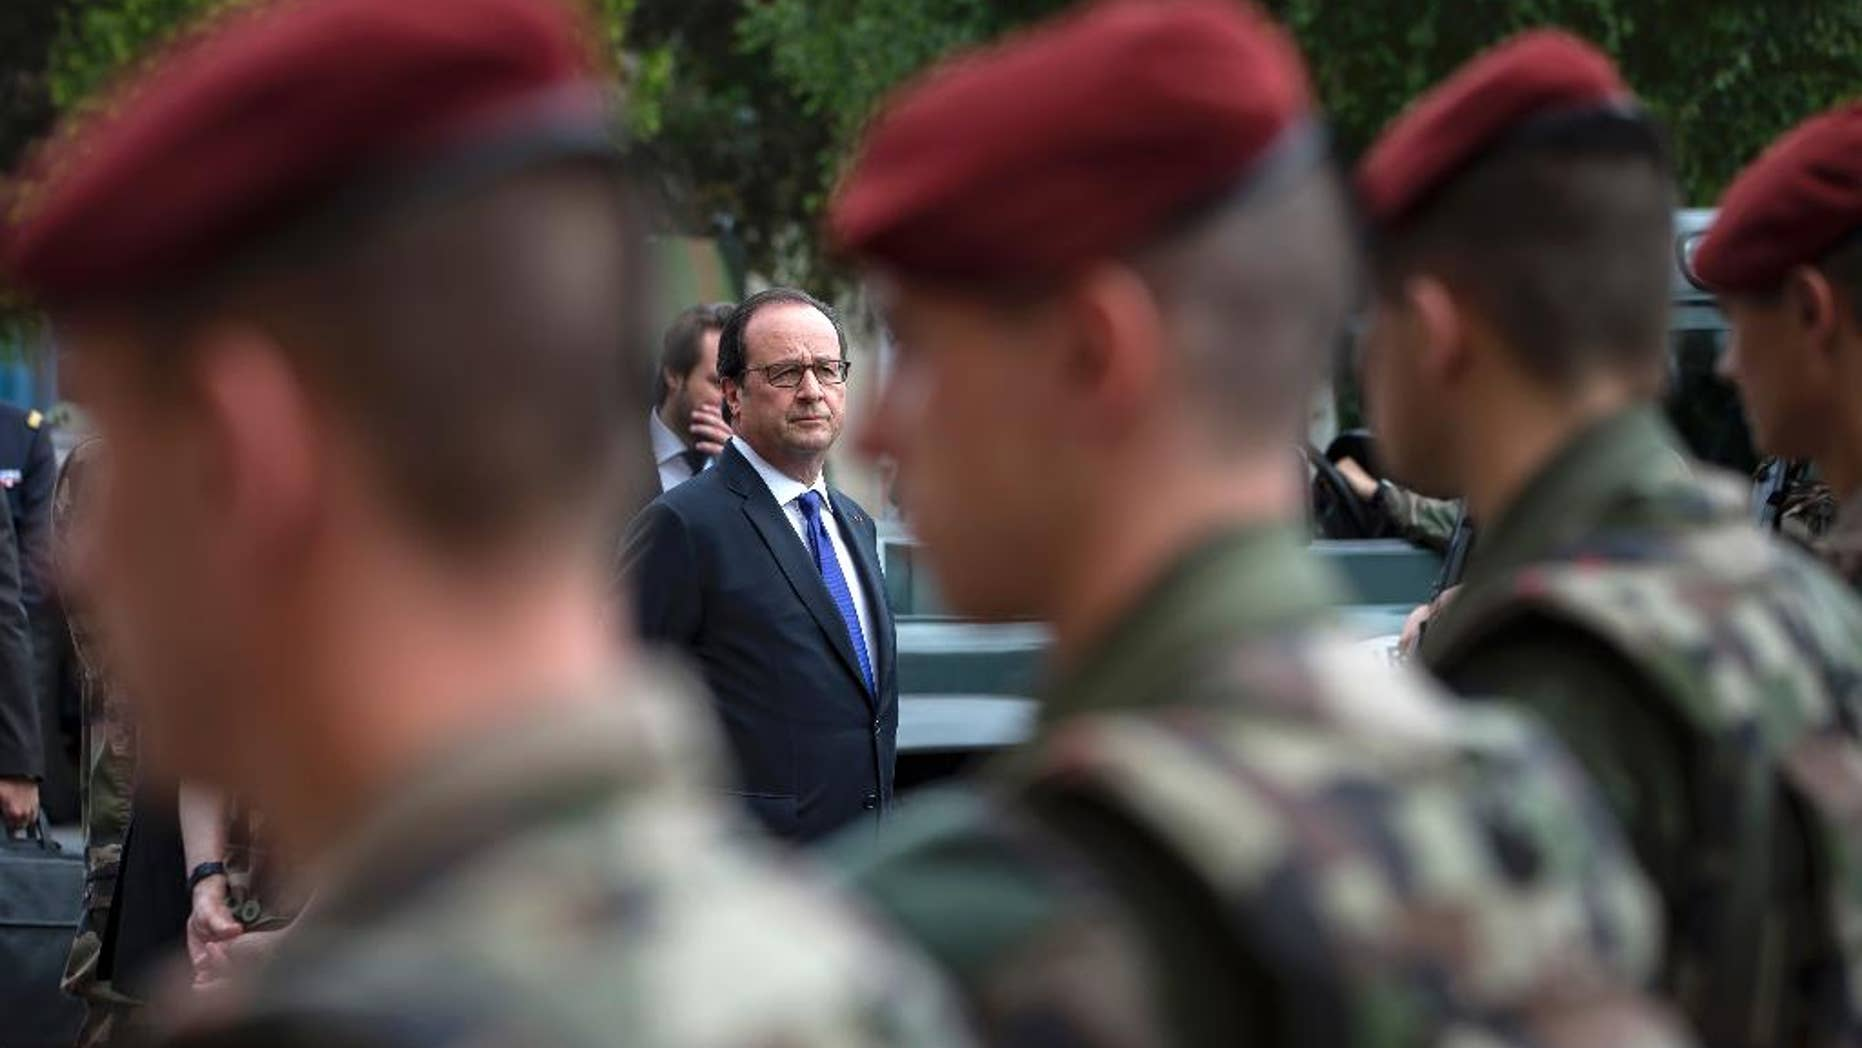 French president Francois Hollande reviews troops at the army base and command center for France's anti-terror 'Vigipirate' plan, dubbed 'Operation Sentinelle', in Vincennes, outside Paris, in July.